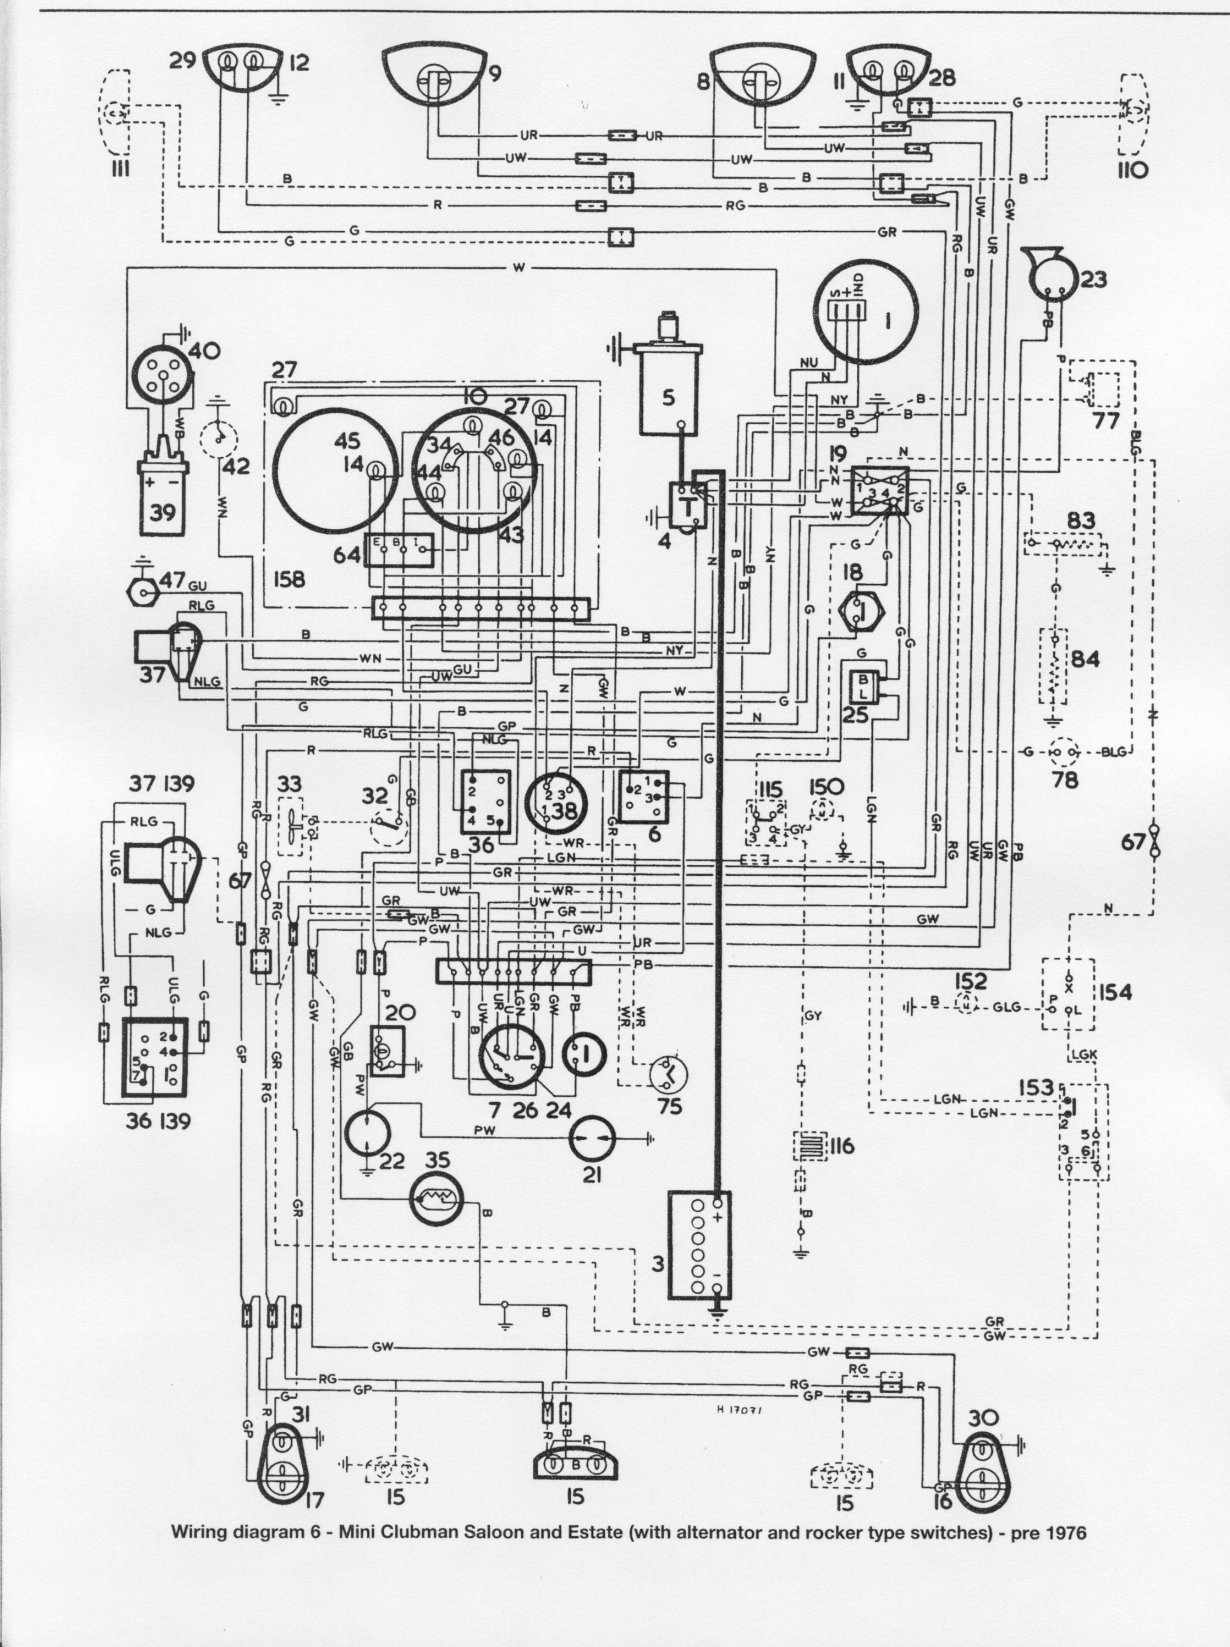 mini car manuals wiring diagrams pdf fault codes rh automotive manuals net 2008 Mini Cooper S Engine Diagram 2010 Mini Cooper Convertible Parts Catalog